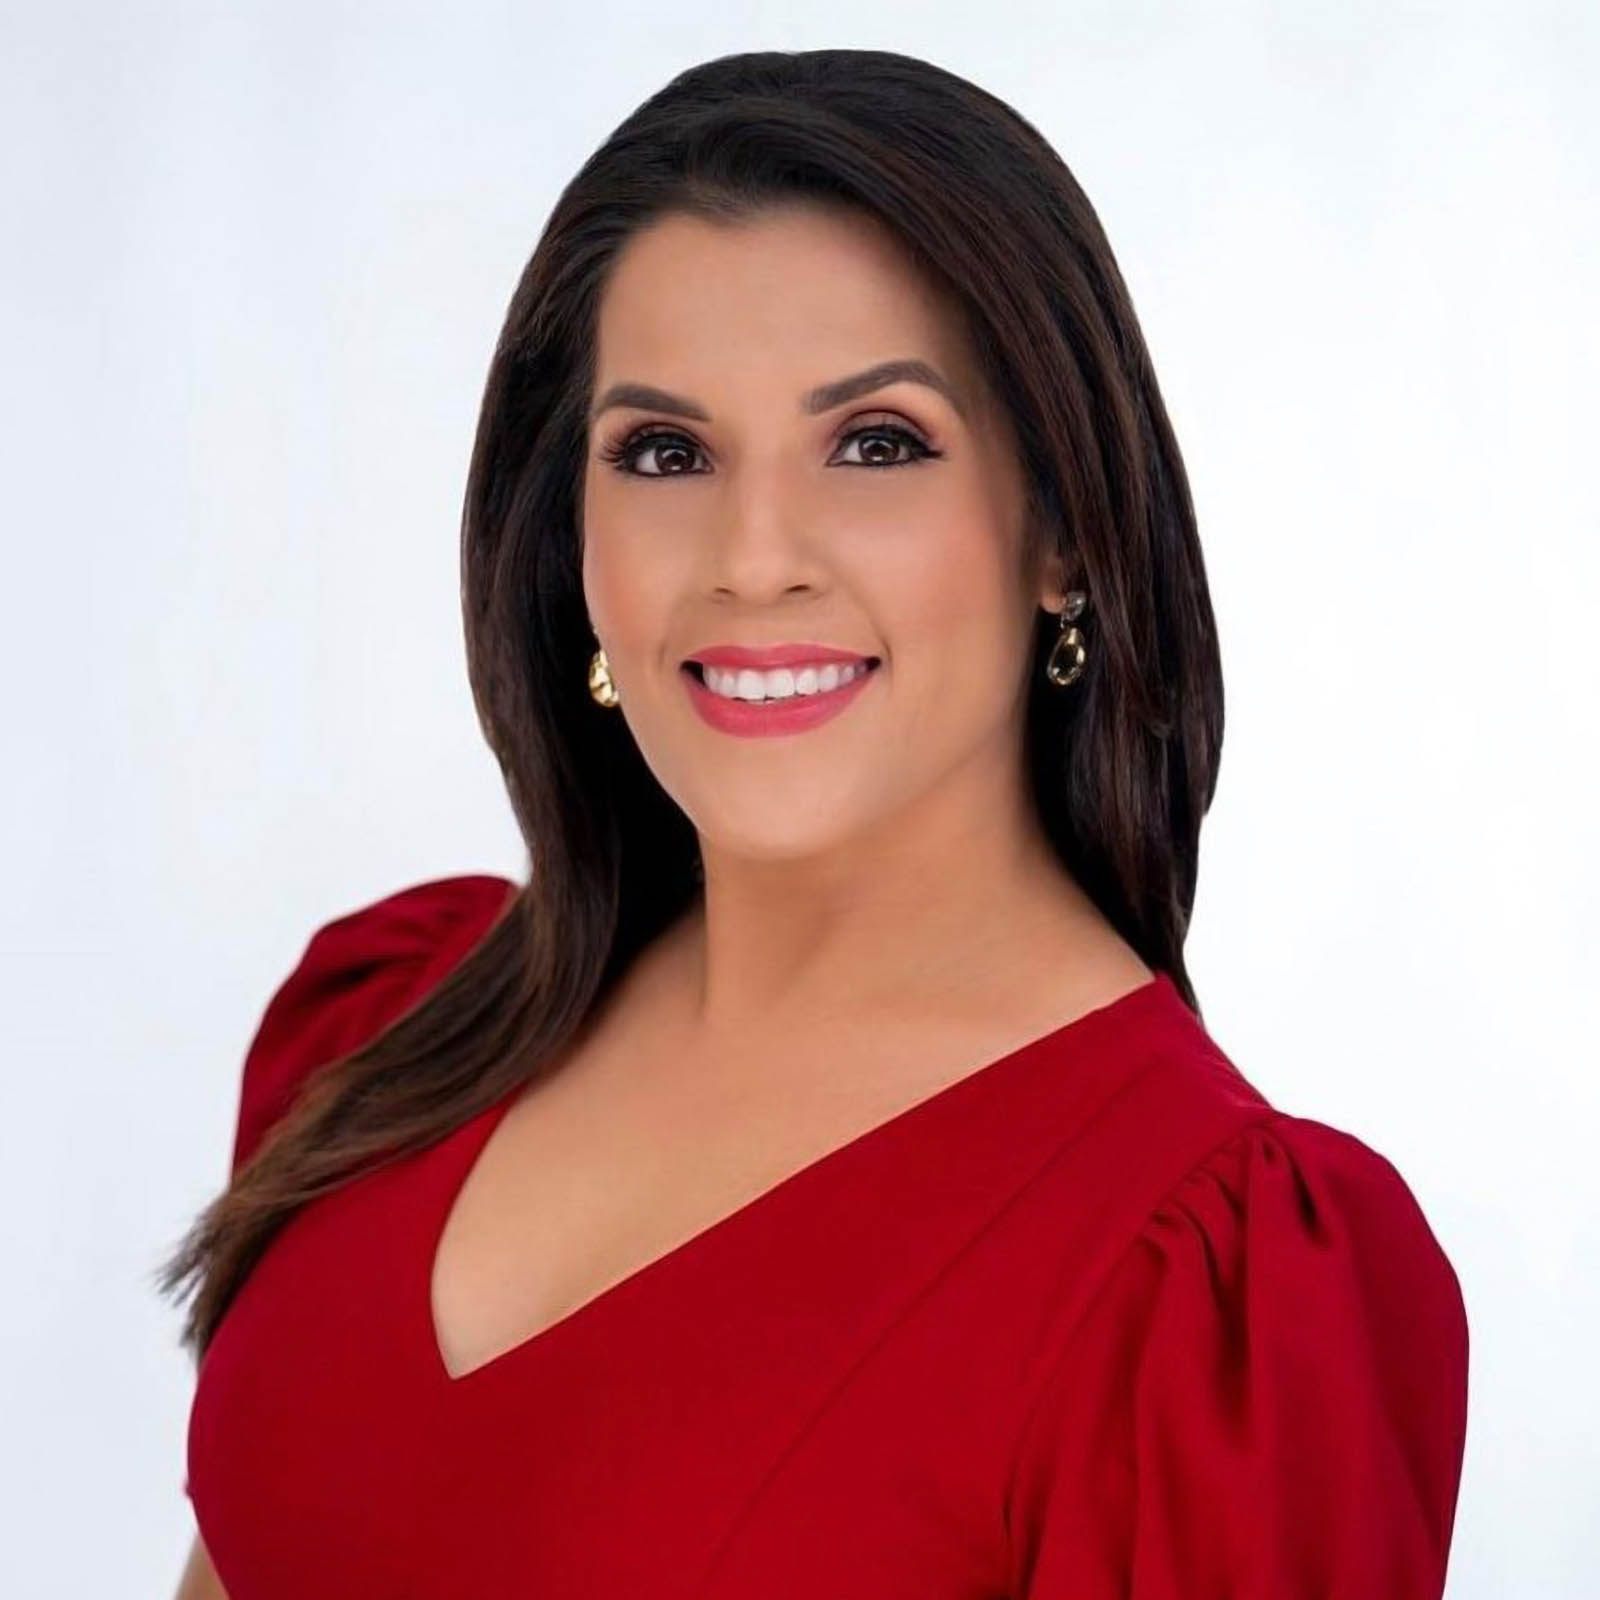 Jeannette Calle at WOAI News